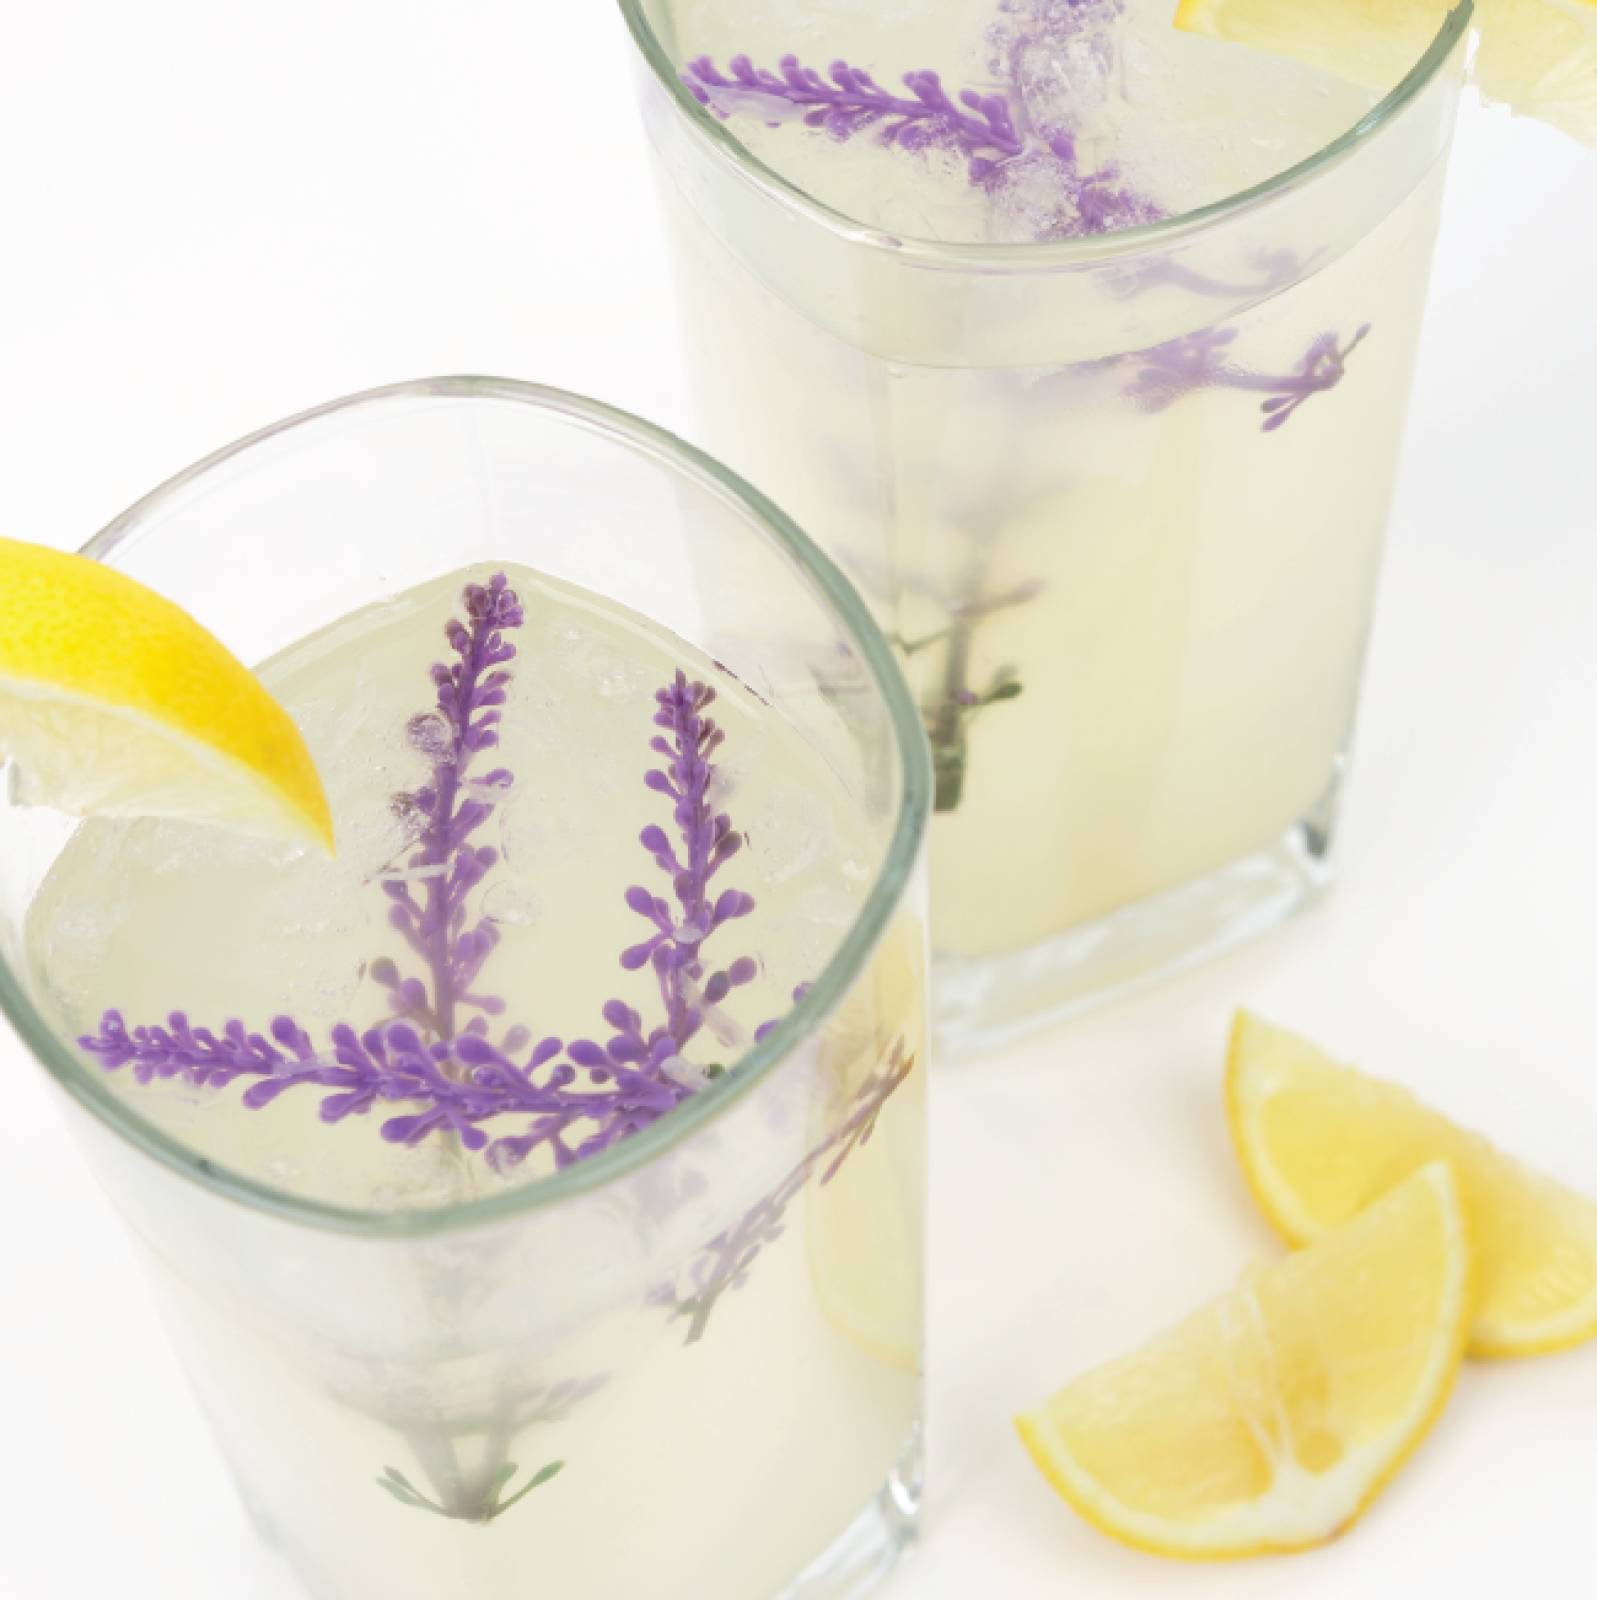 Honey Lavender Lemonade